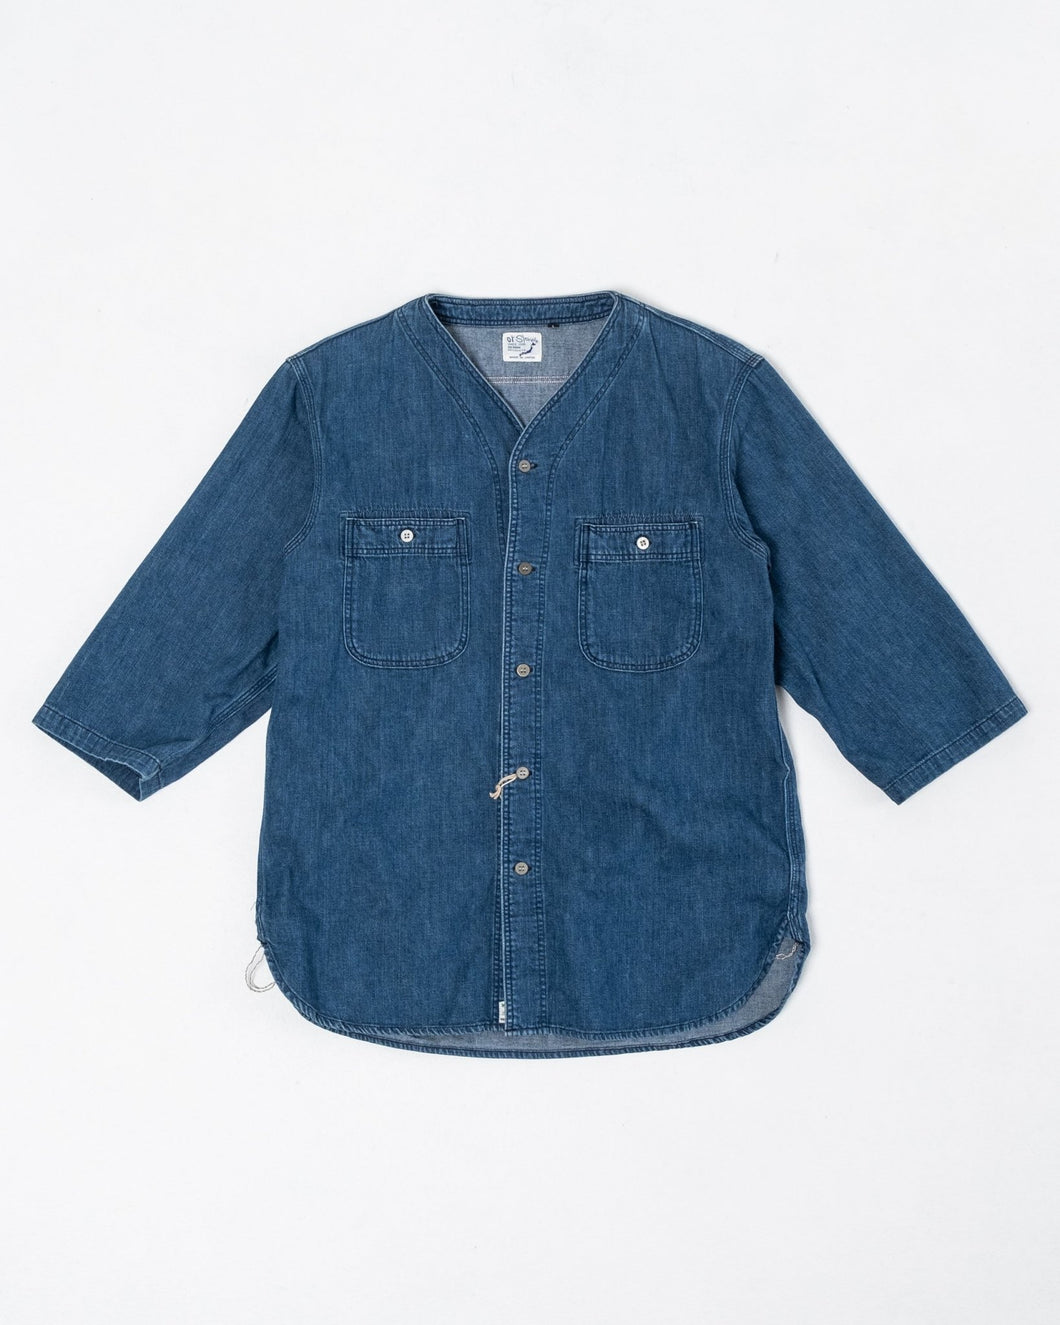 No Collar 3/4 Sleeve Shirt Denim Used - Meadow